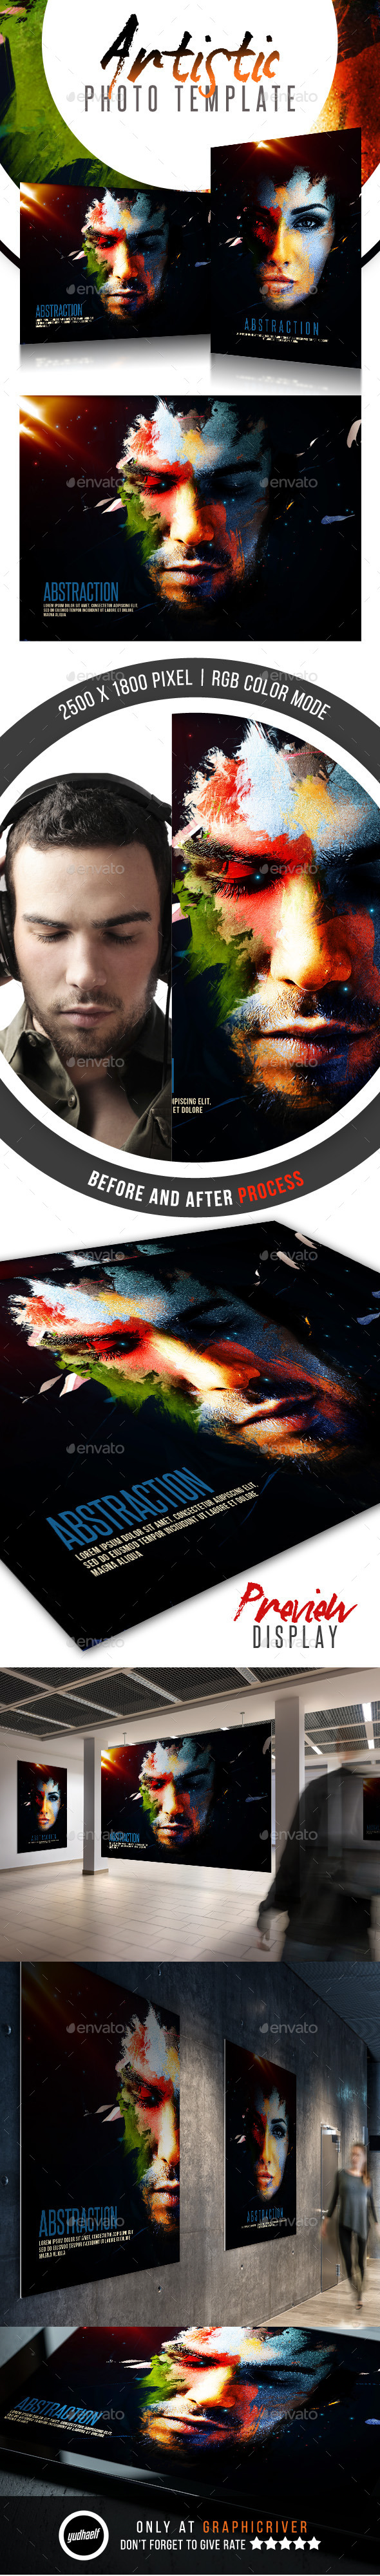 Abstraction - Artistic Photo Template - Artistic Photo Templates